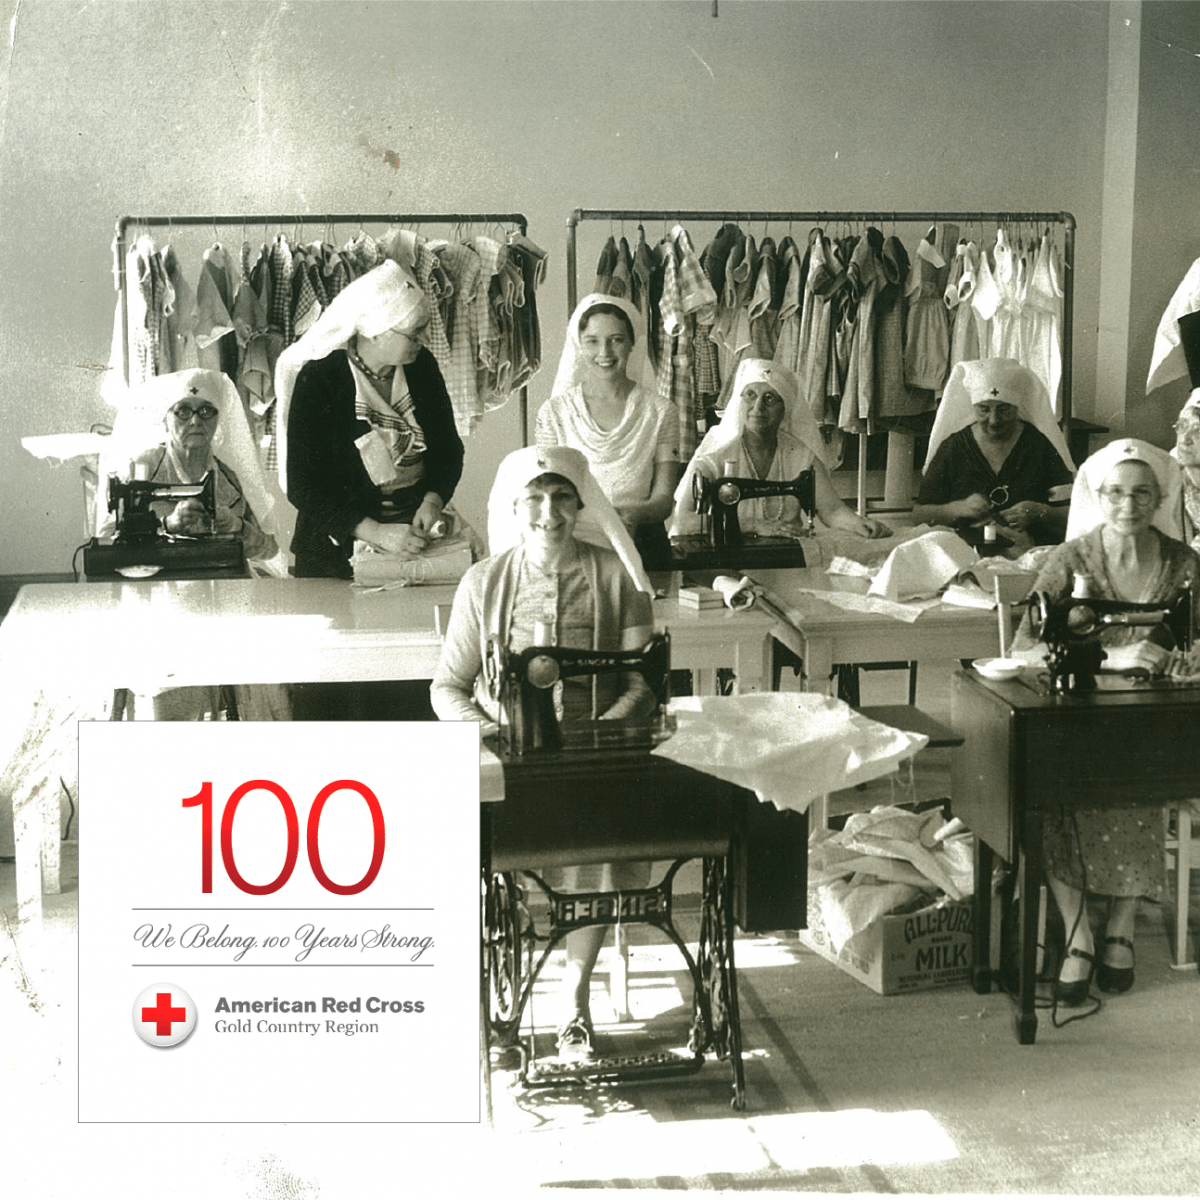 100 years of the American Red Cross